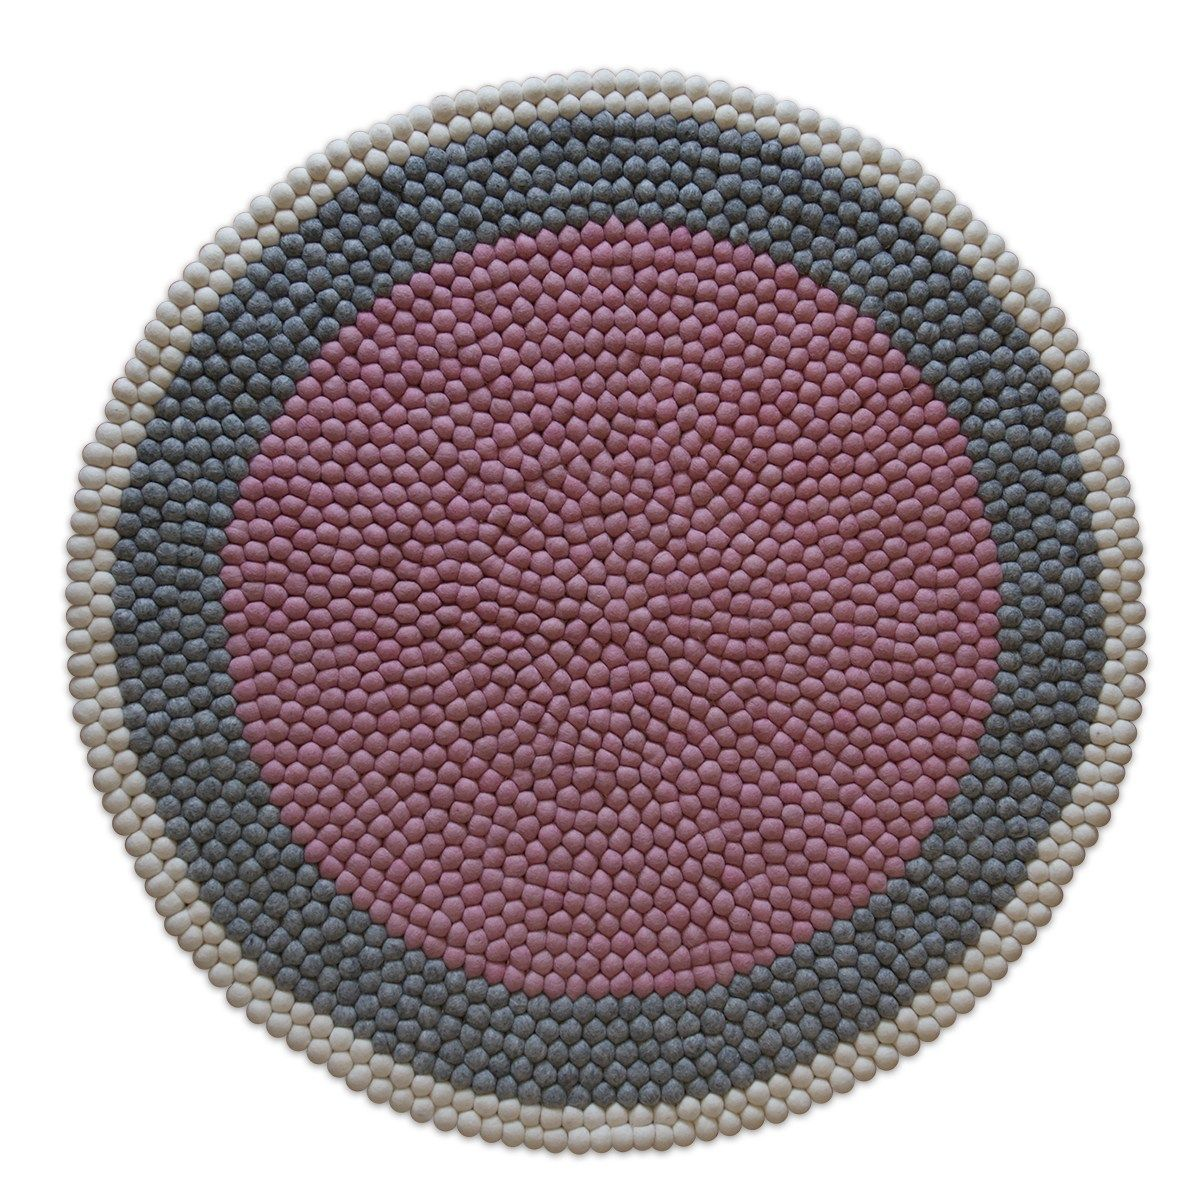 Our new Lottie rug has been inspired by our love of Scandinavian design.  With it's warm dusty pink inner circle and natural grey and cream outer rings, it's sure to make a statement in any home. The Lottie is super soft and stitched by using over 3,000 felt balls making it perfect for both adults and children alike.  Each of our rugs are handmade, which means every one of them is unique and no two are the same.  Please allow 1-2 weeks for delivery.  Sizes: 100cm, 120cm and 140cm (If you…